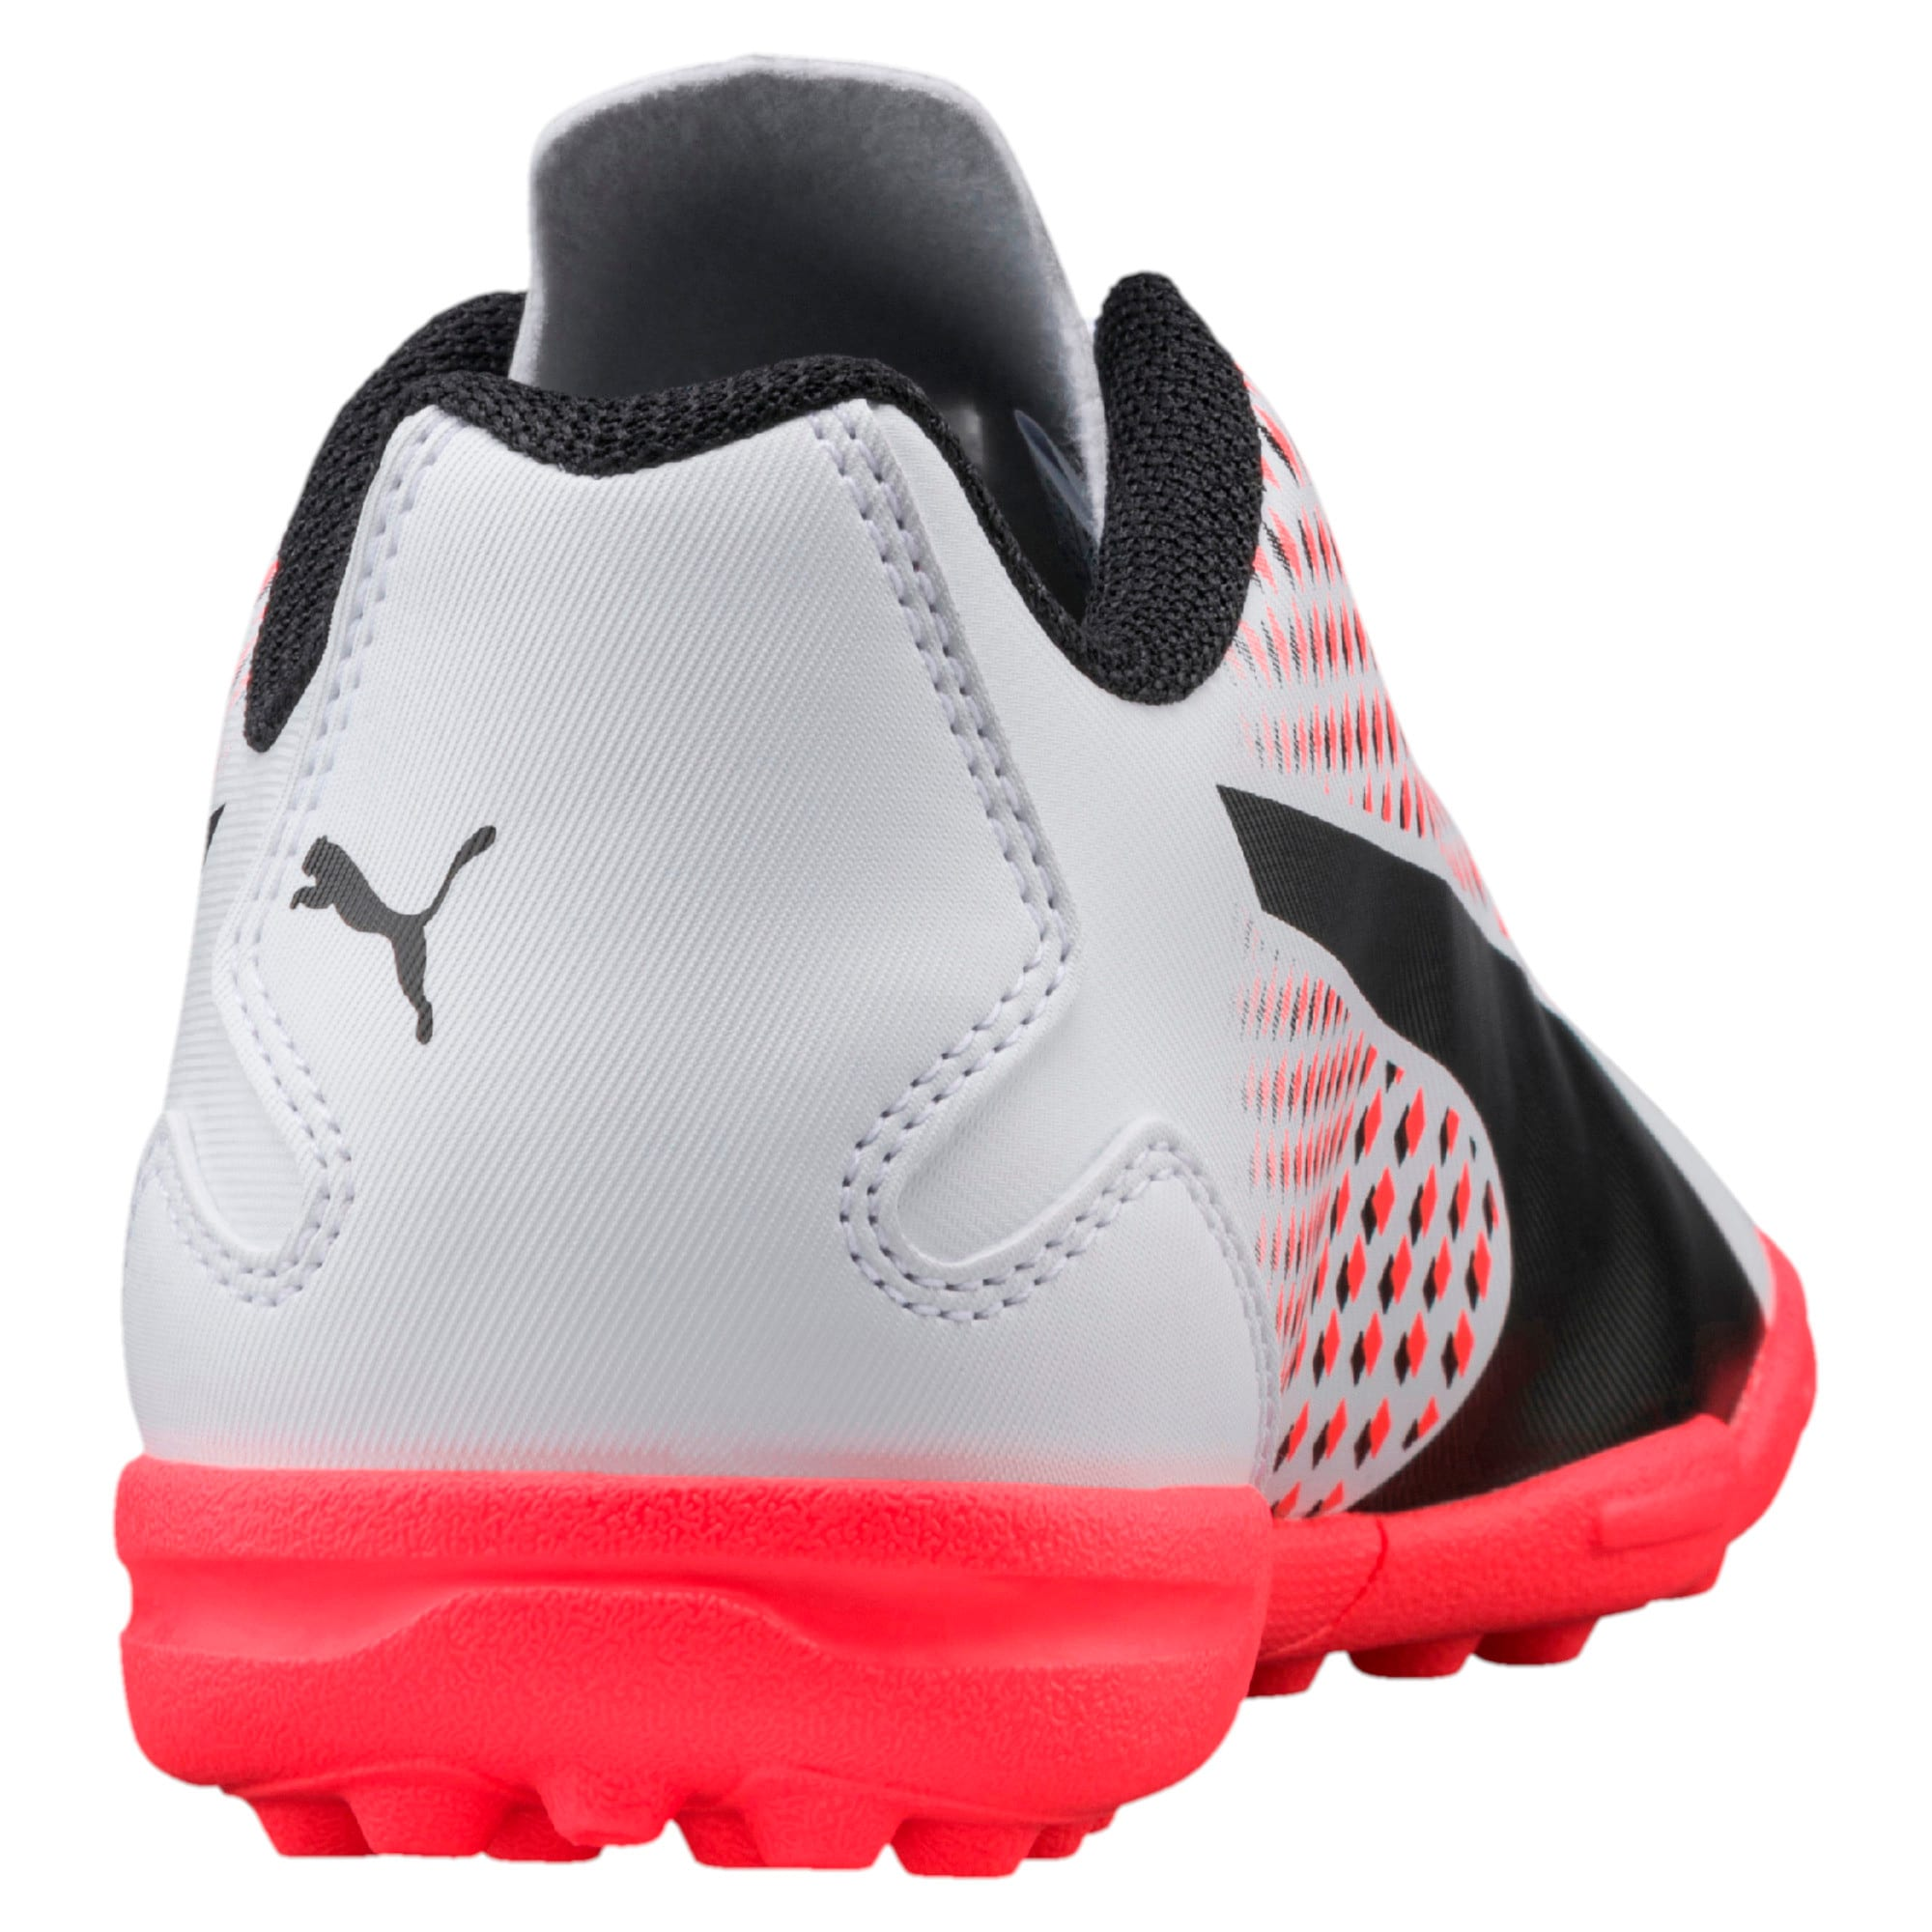 Thumbnail 3 of Adreno III TT Kids' Football Boots, White-Black-Coral, medium-IND